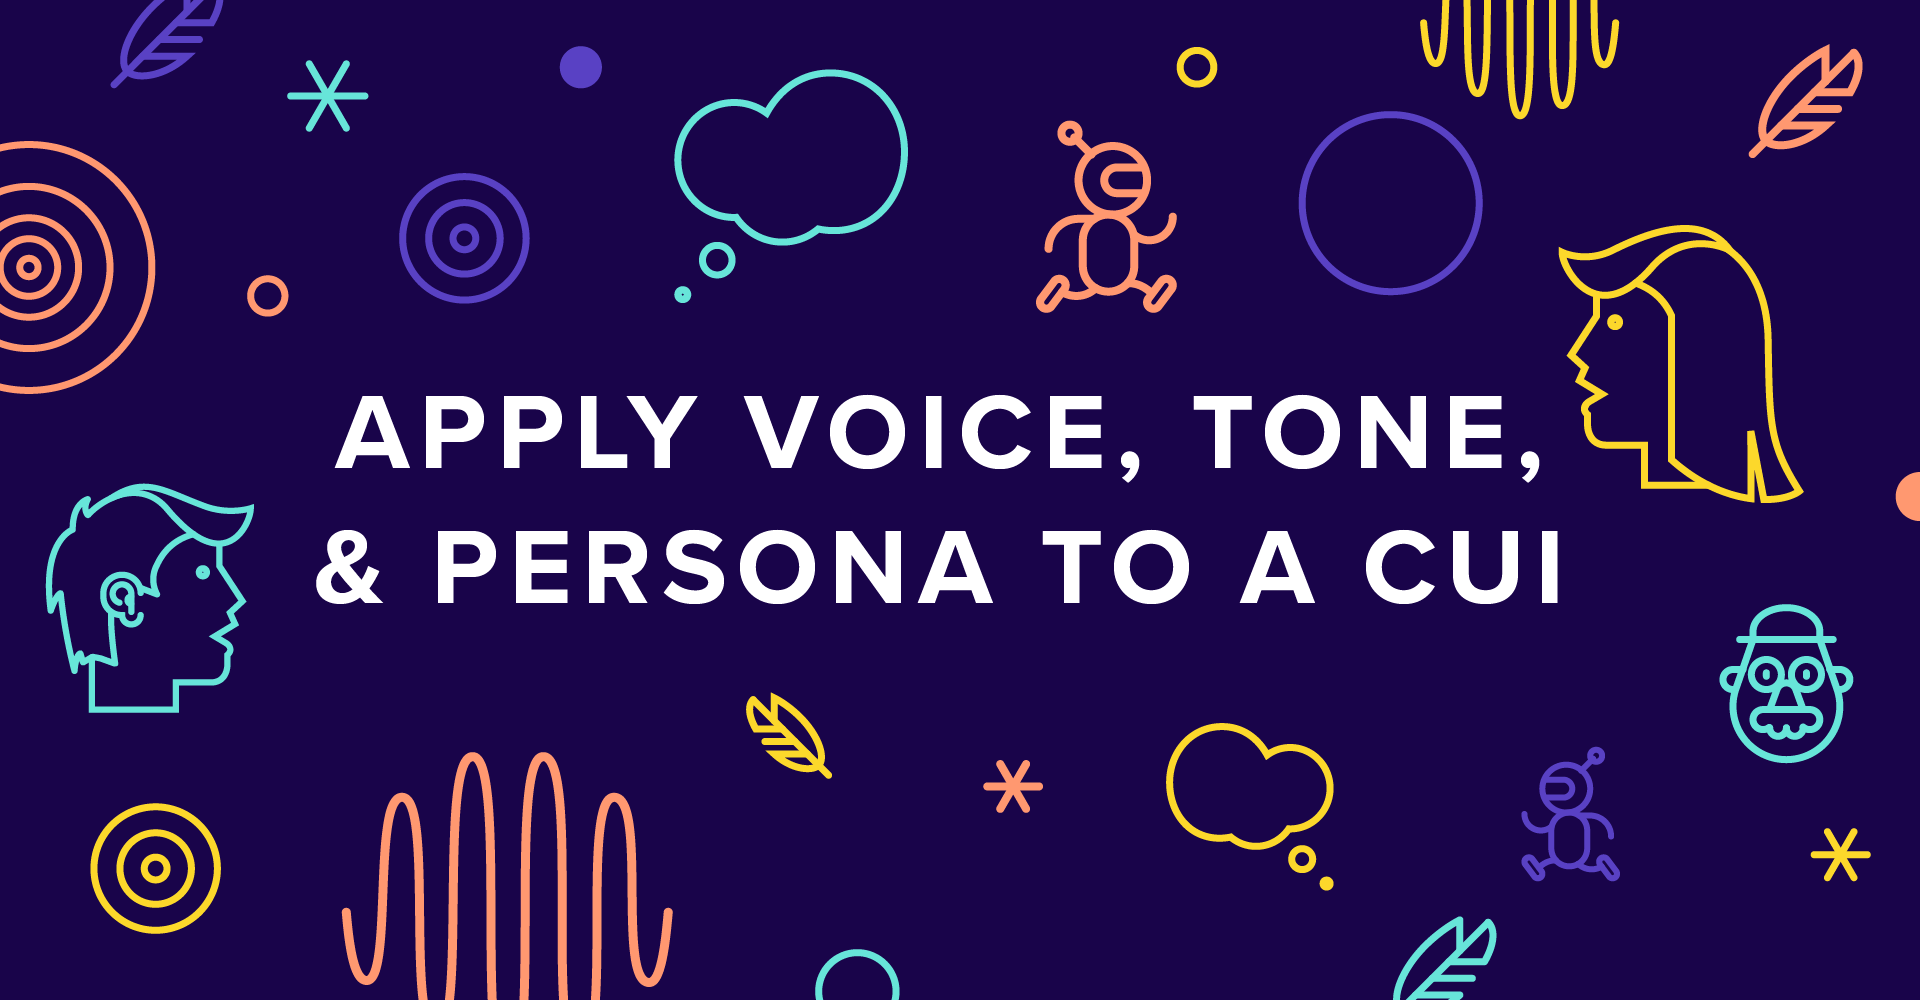 Branding Bots Part 3: Applying Voice, Tone, & Persona to a CUI - Voxable